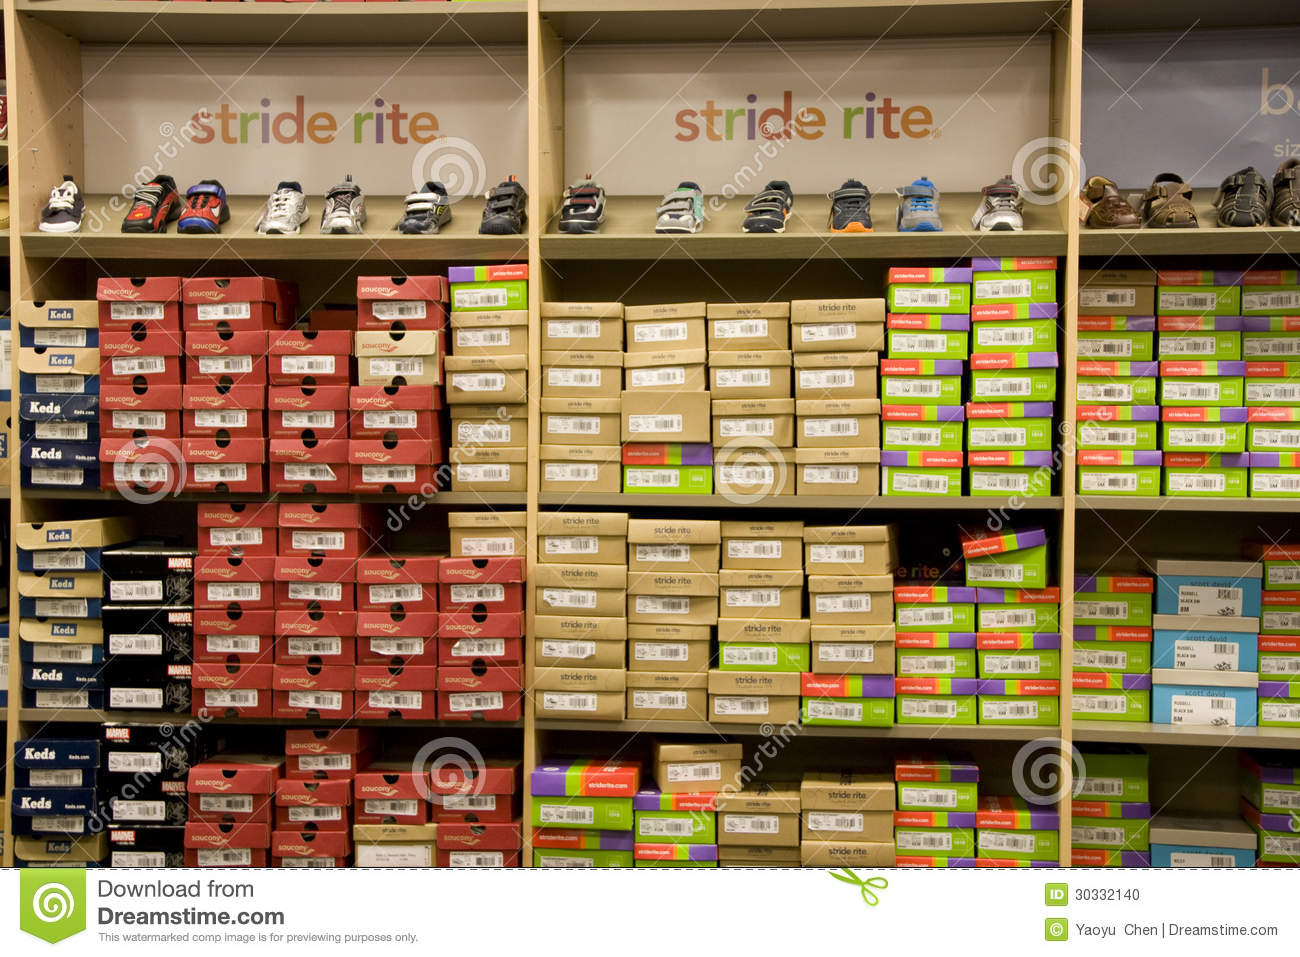 Stride Rite Shoes Uk